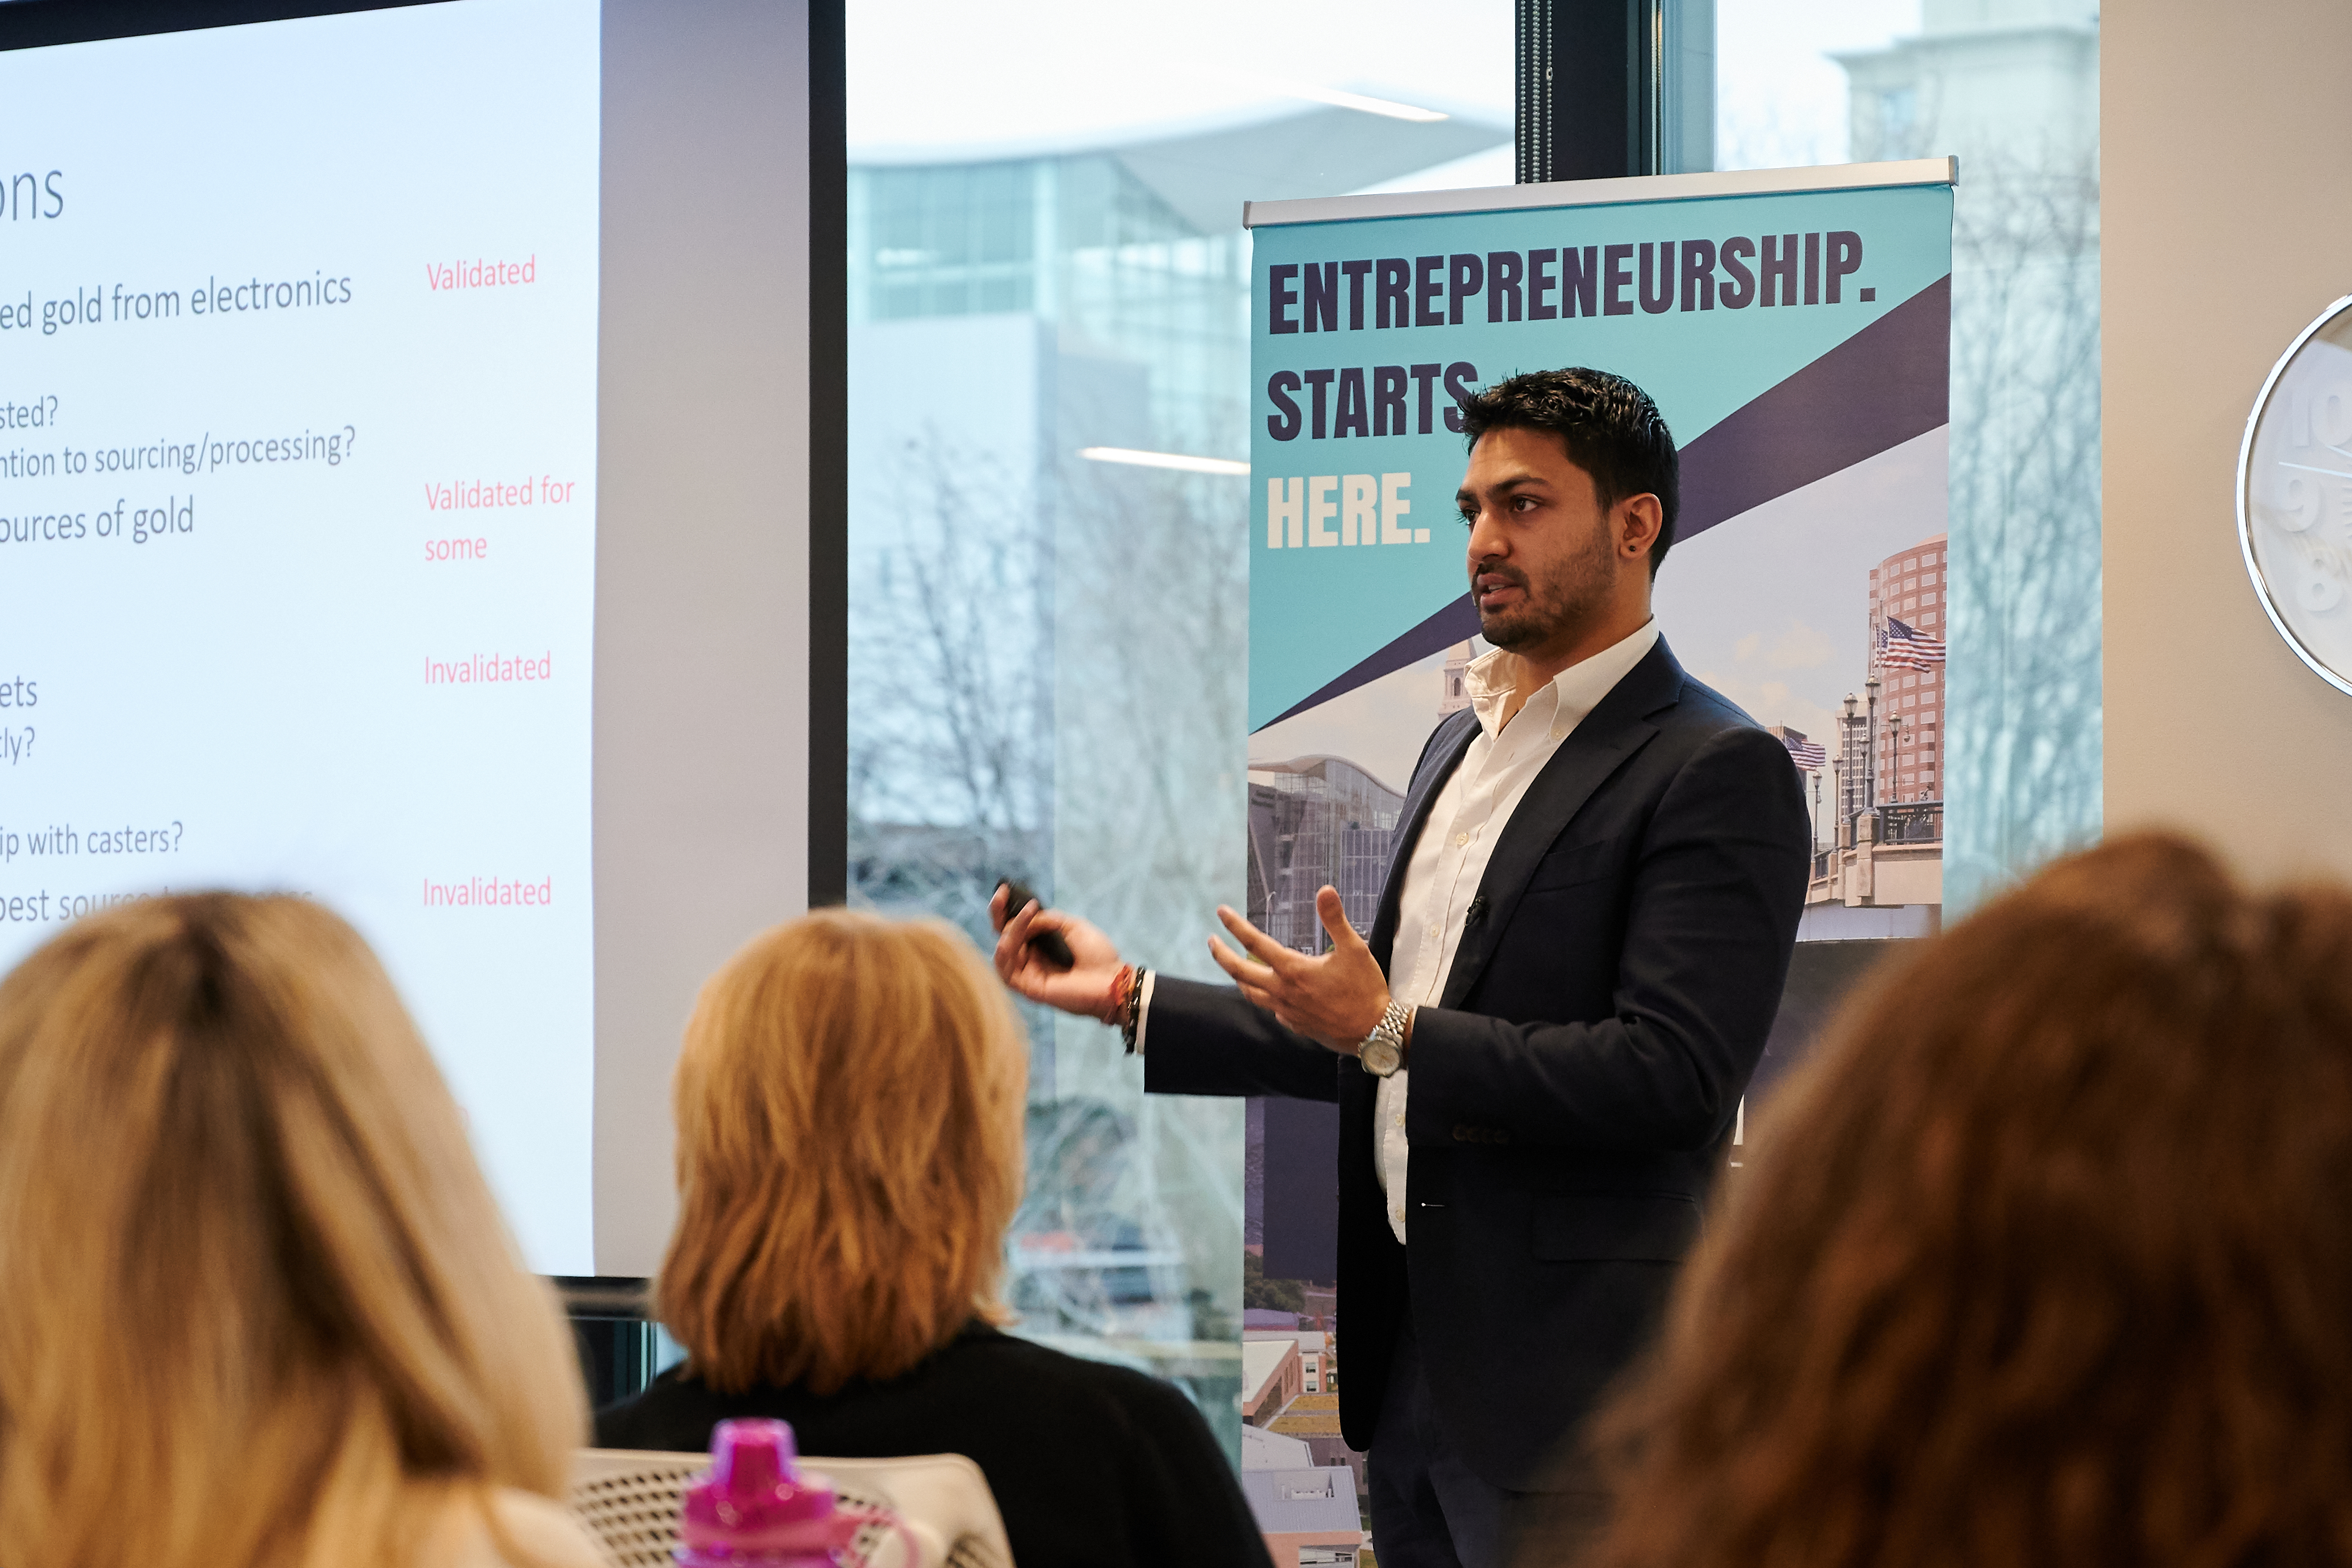 A student gives a presentation during the Accelerate UConn innovation session in the fall of 2019.